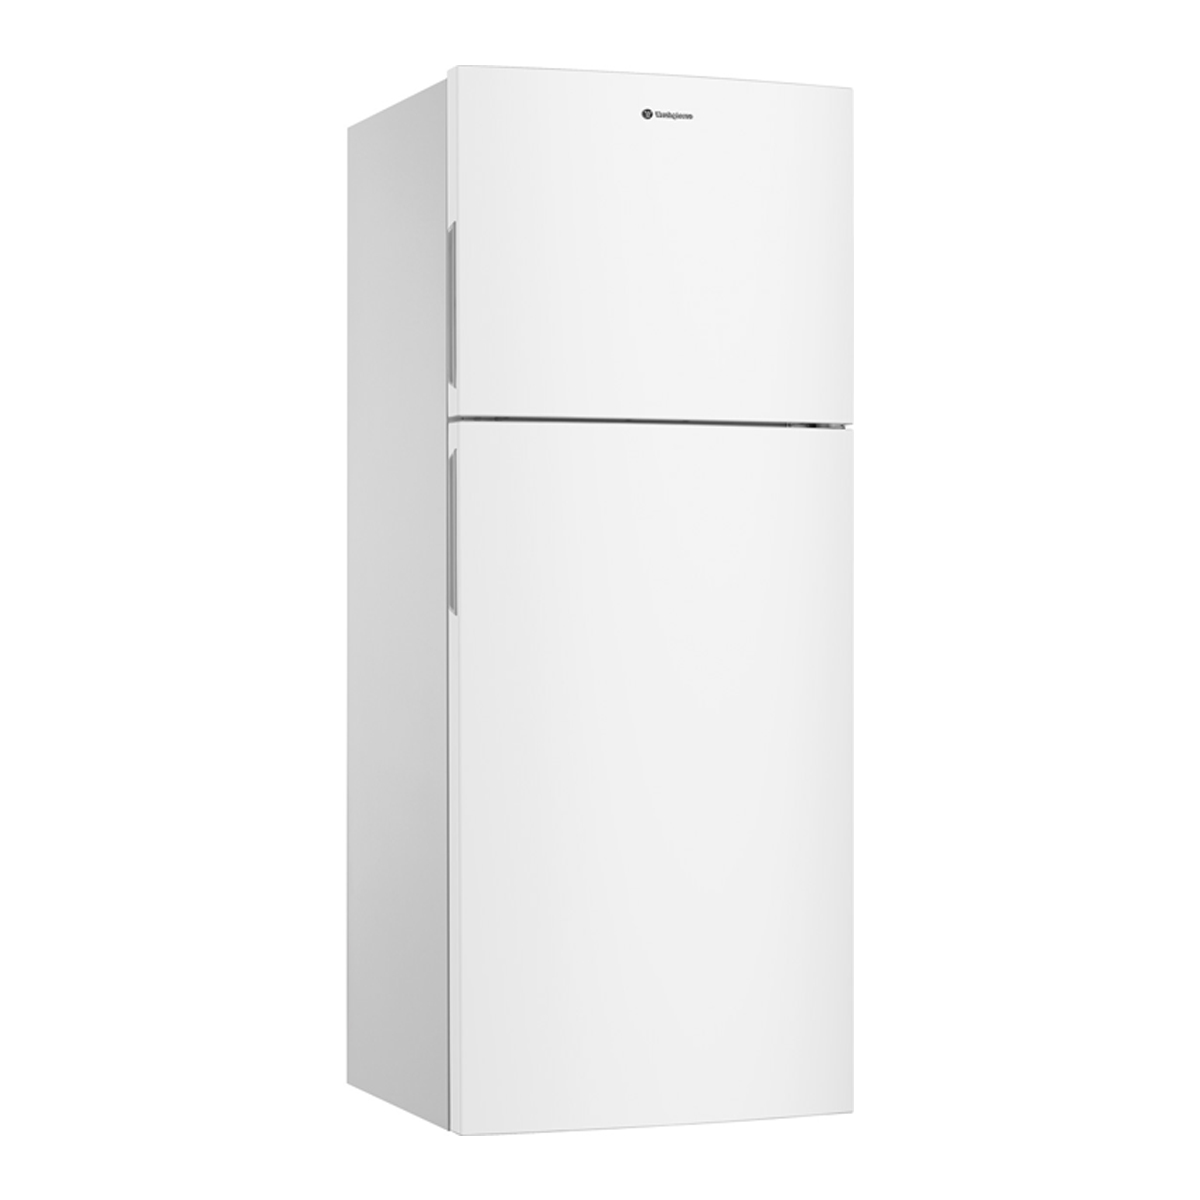 Westinghouse WTB3400WCRH 340L Top Mount Fridge